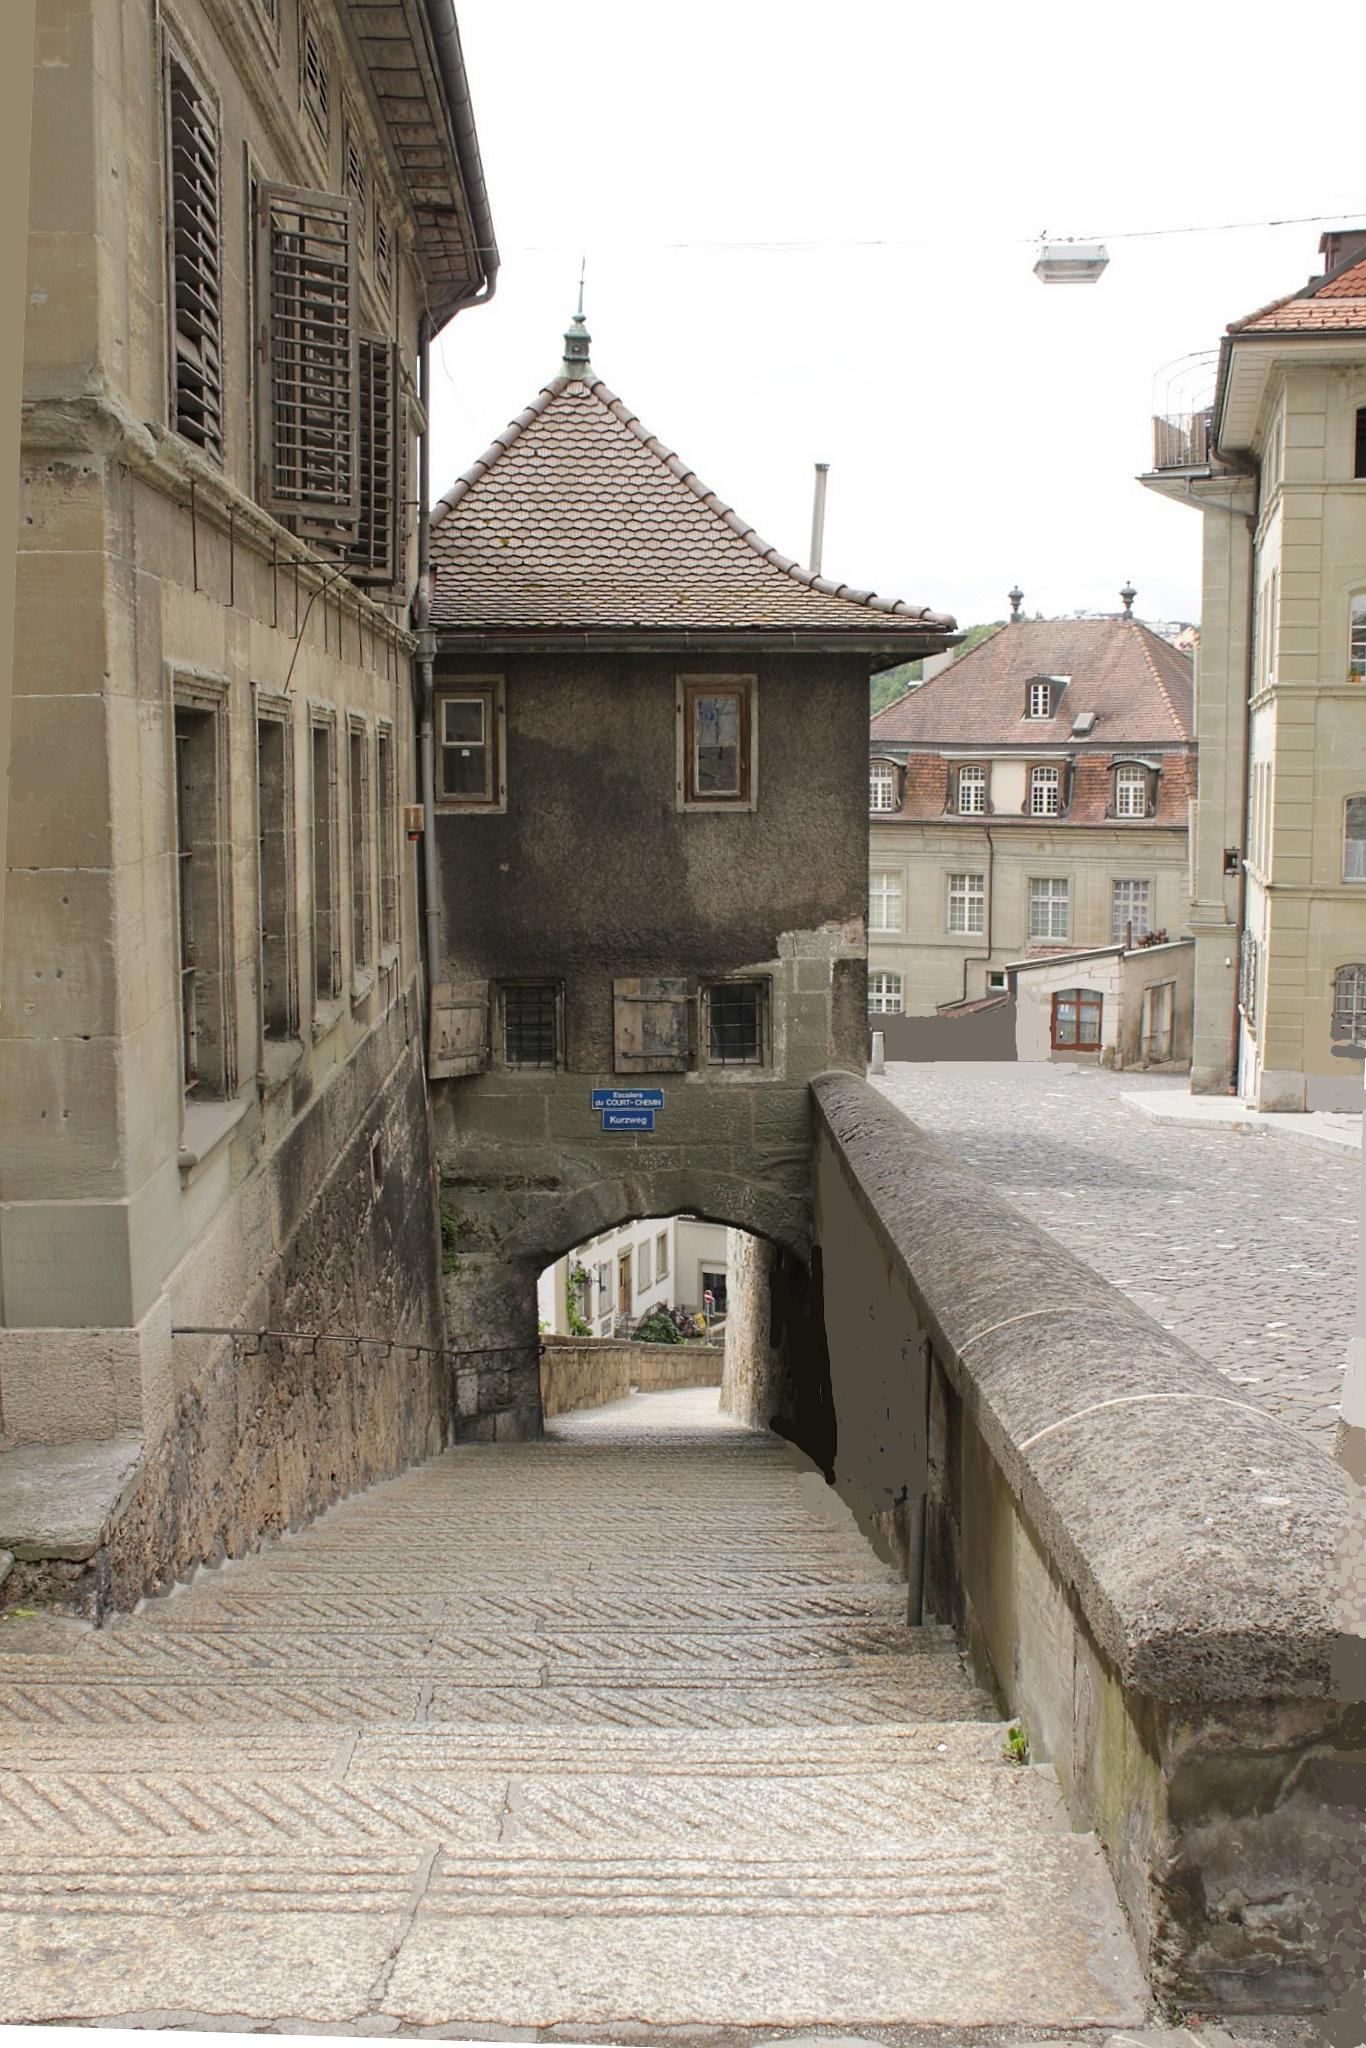 Stairs down to the lower town of Fribourg, Switzerland by Andre RAMSEYER